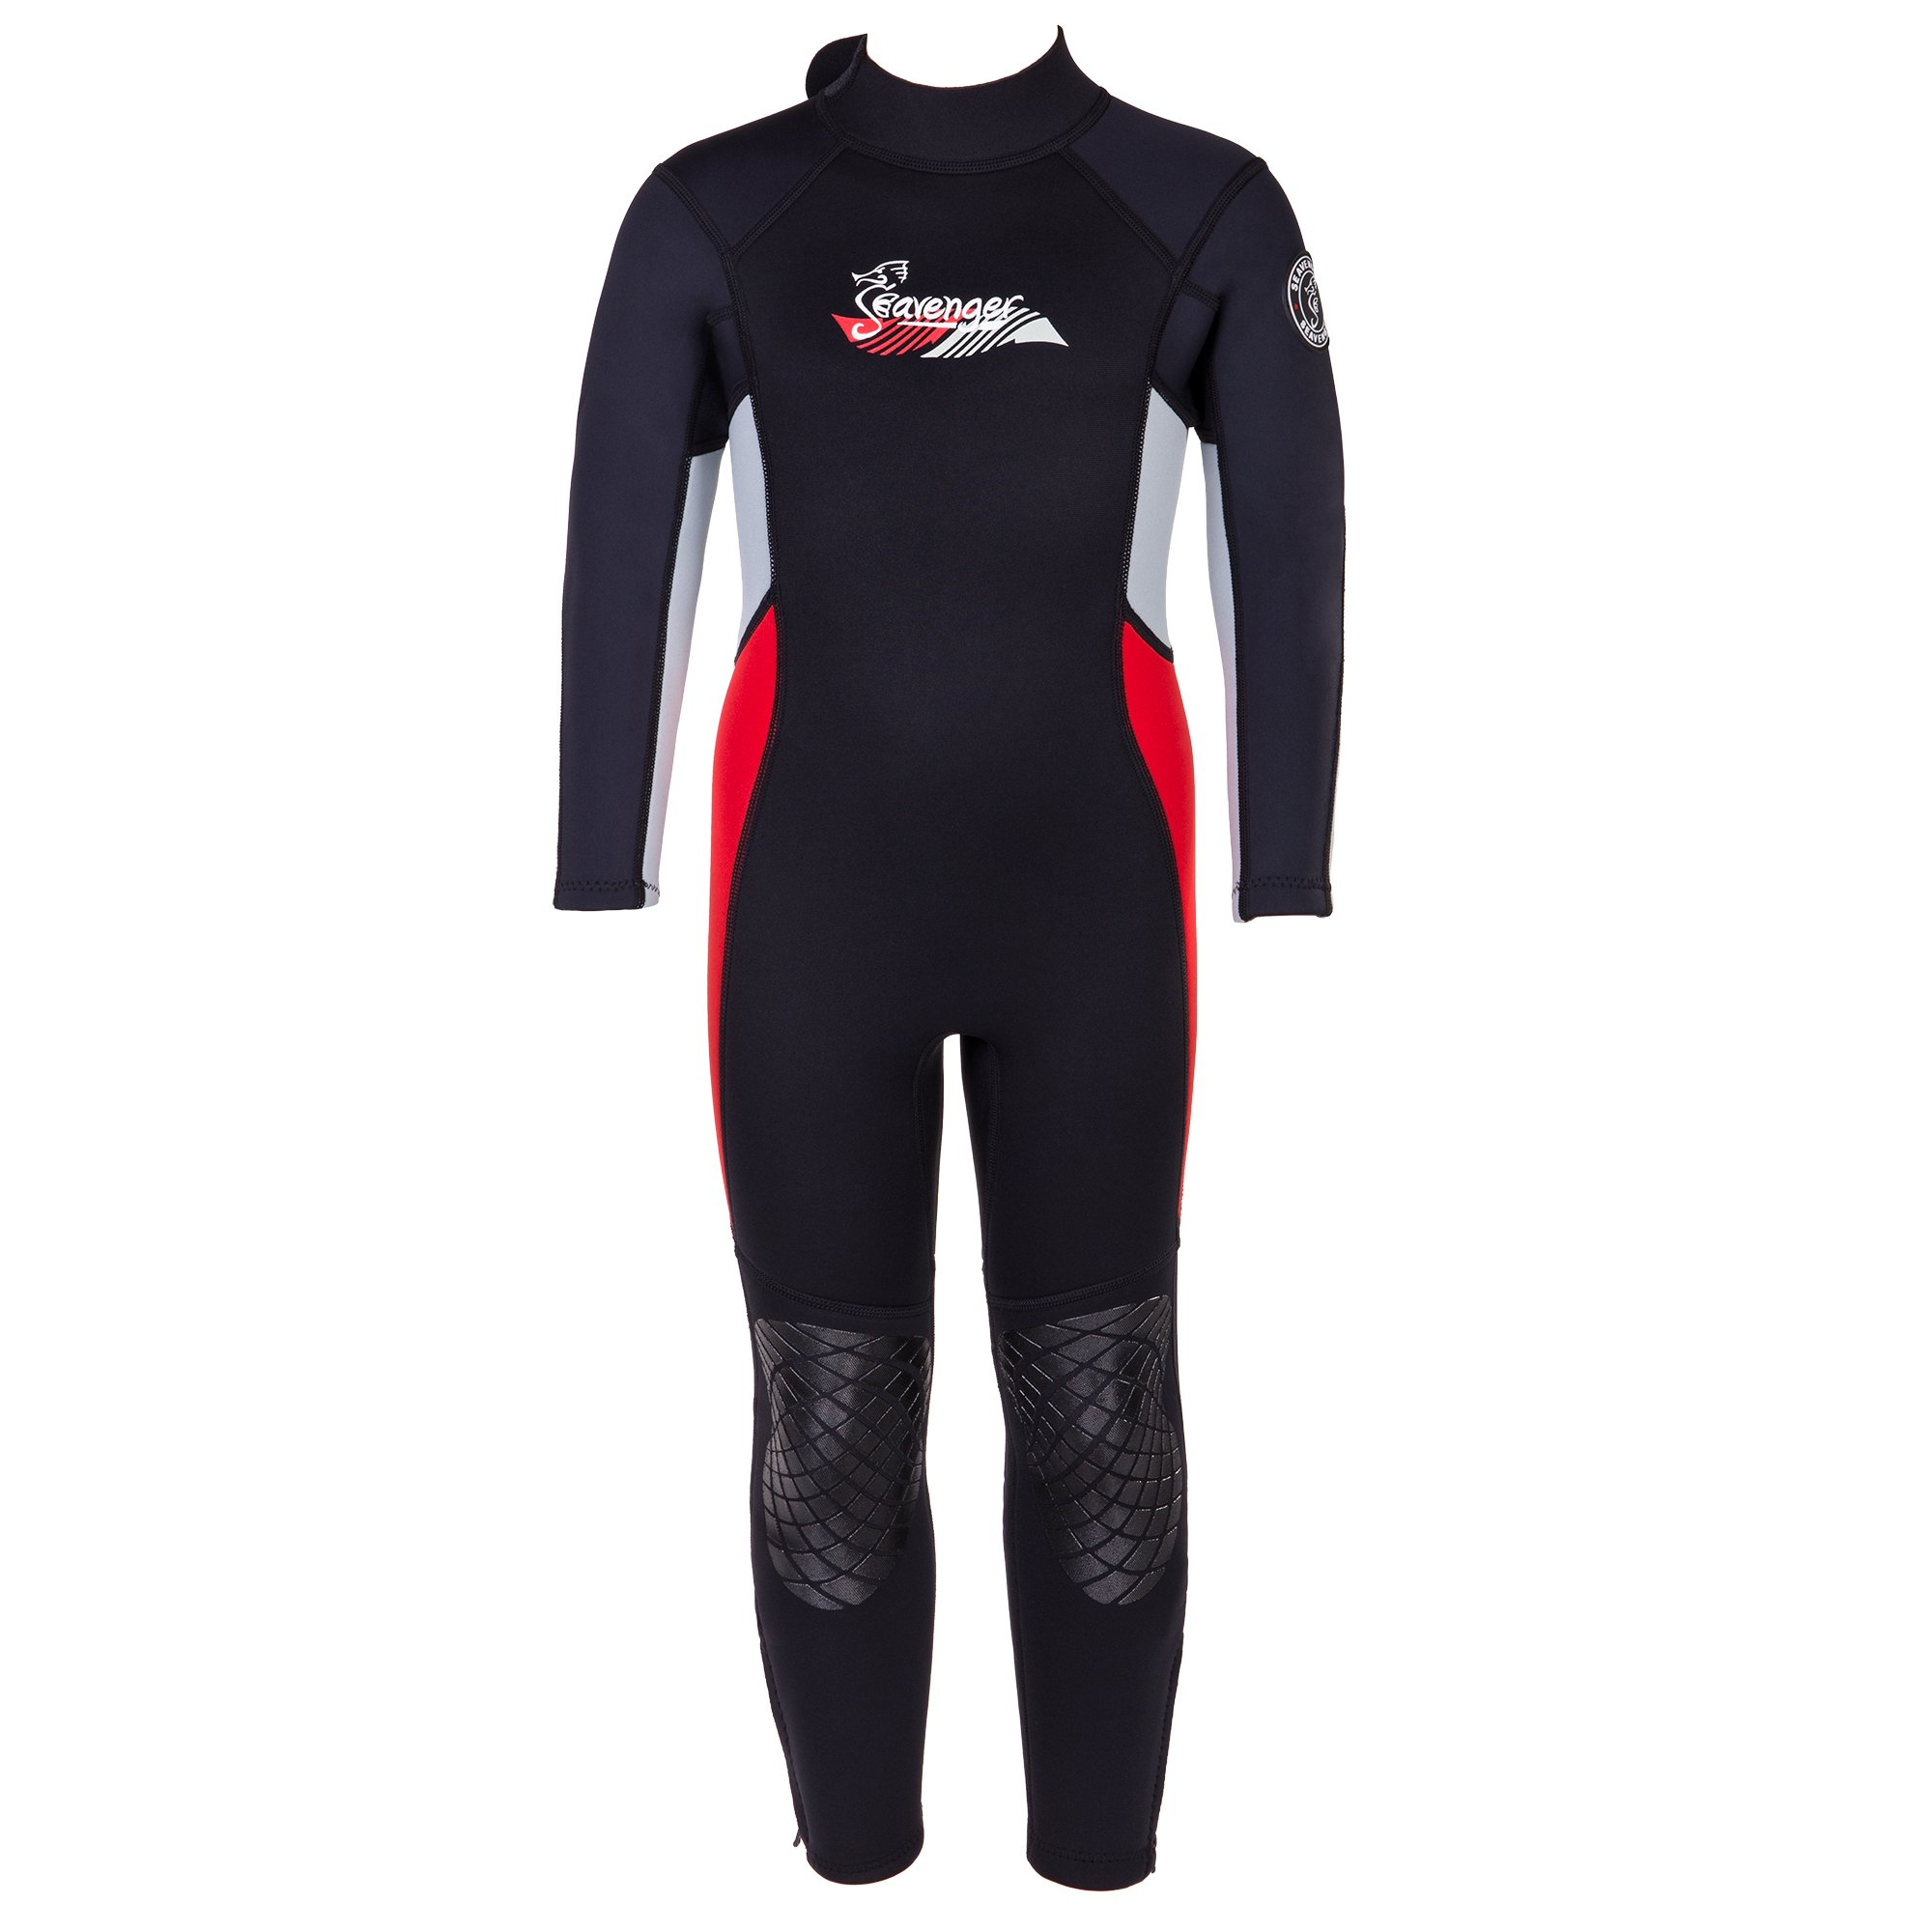 Seavenger Scout 3mm Kids Wetsuit | Full Body Neoprene Suit for Snorkeling, Swimming, Diving (Fire Red, 8) by Seavenger